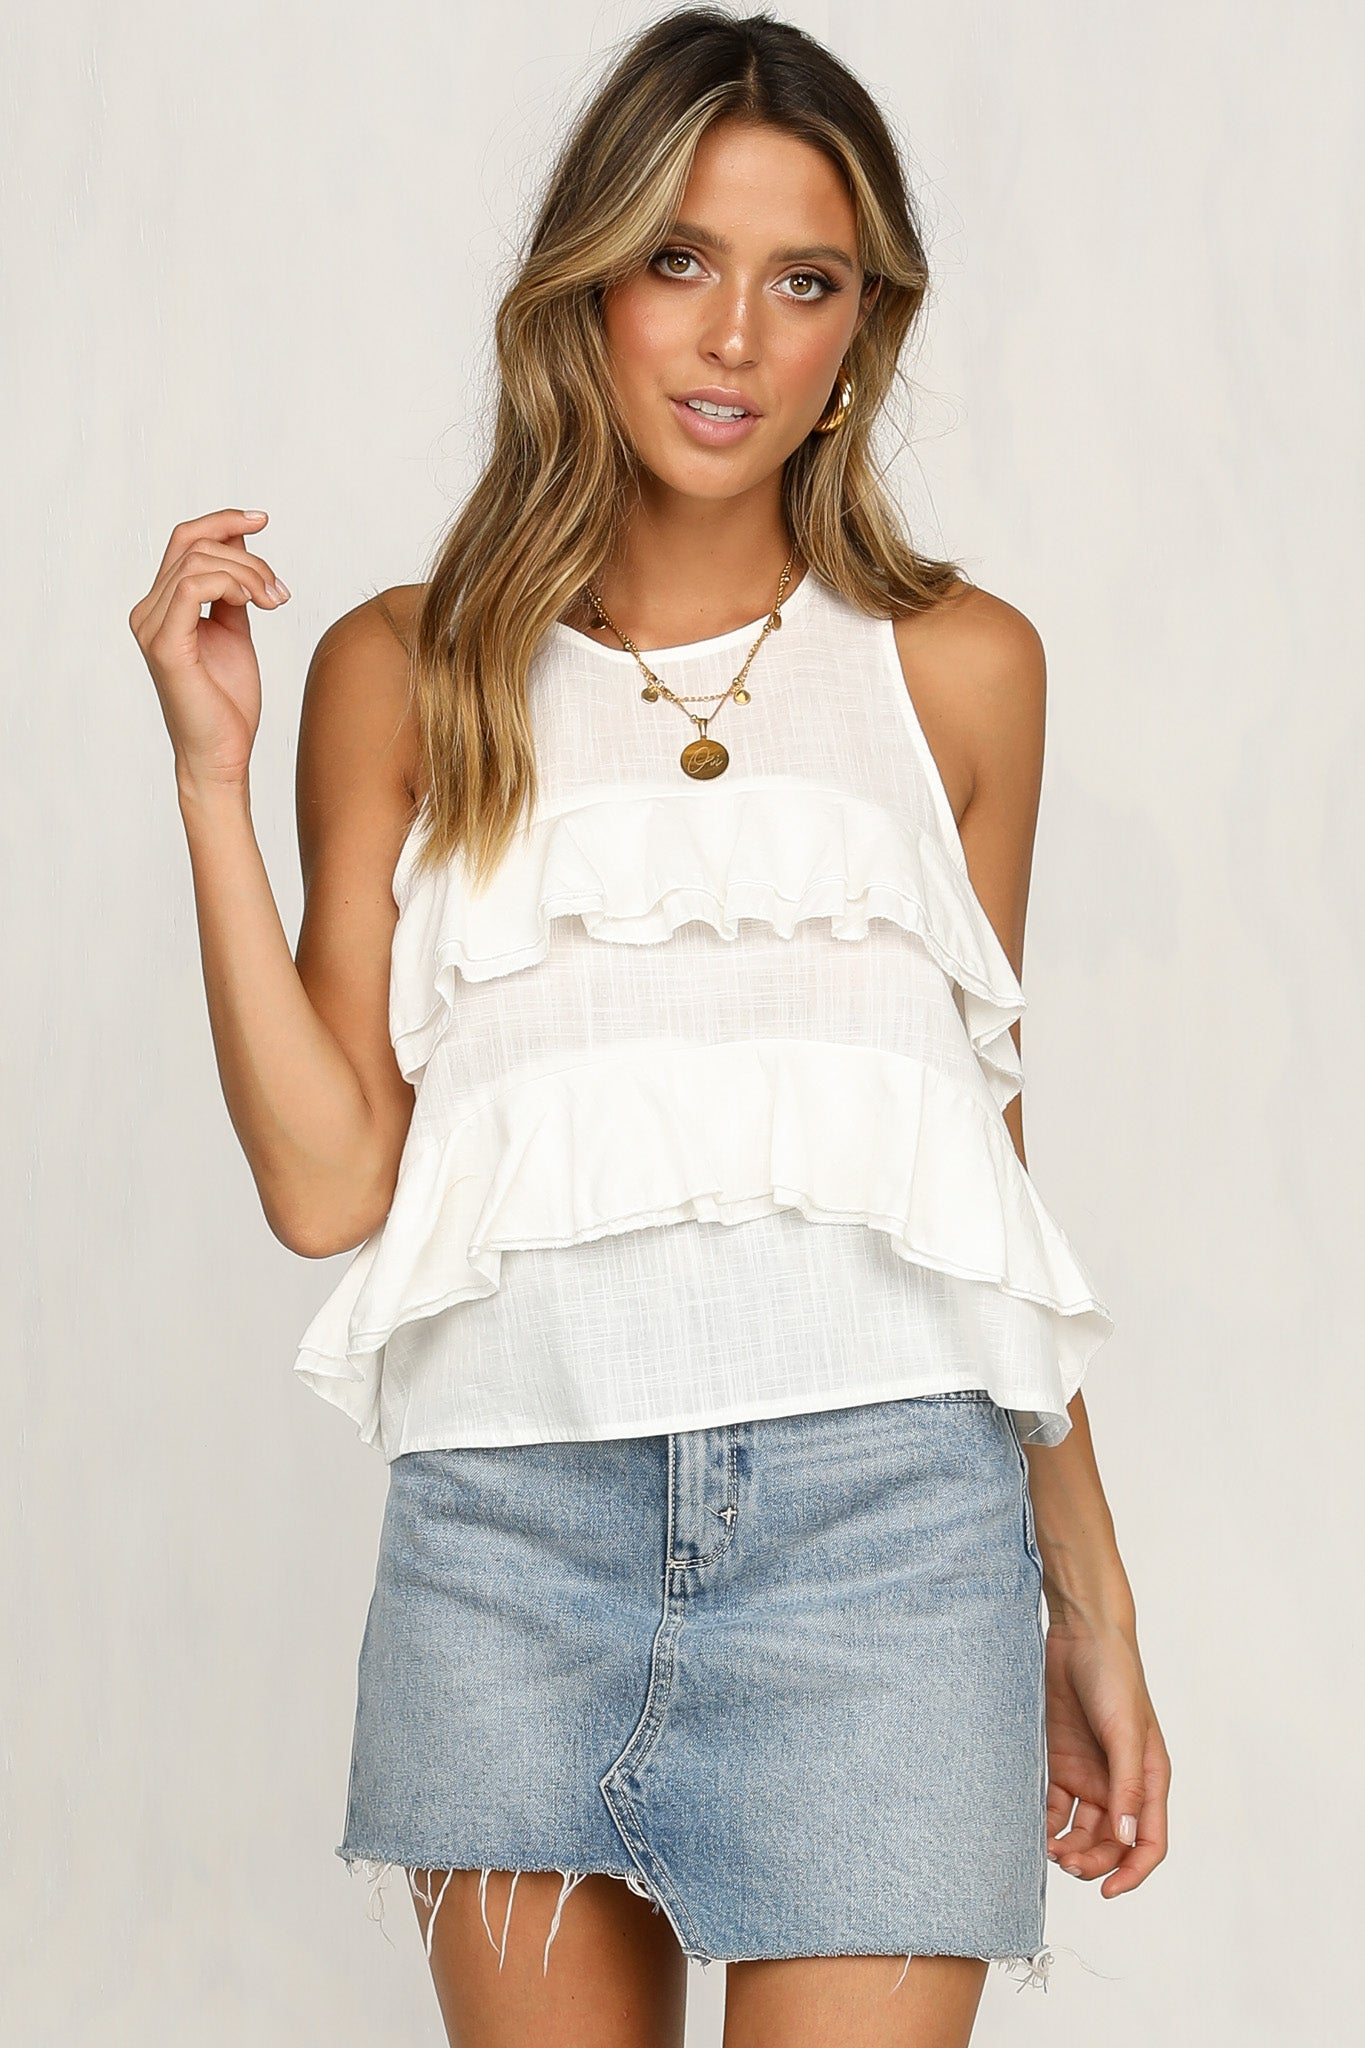 Leave A Trace Top